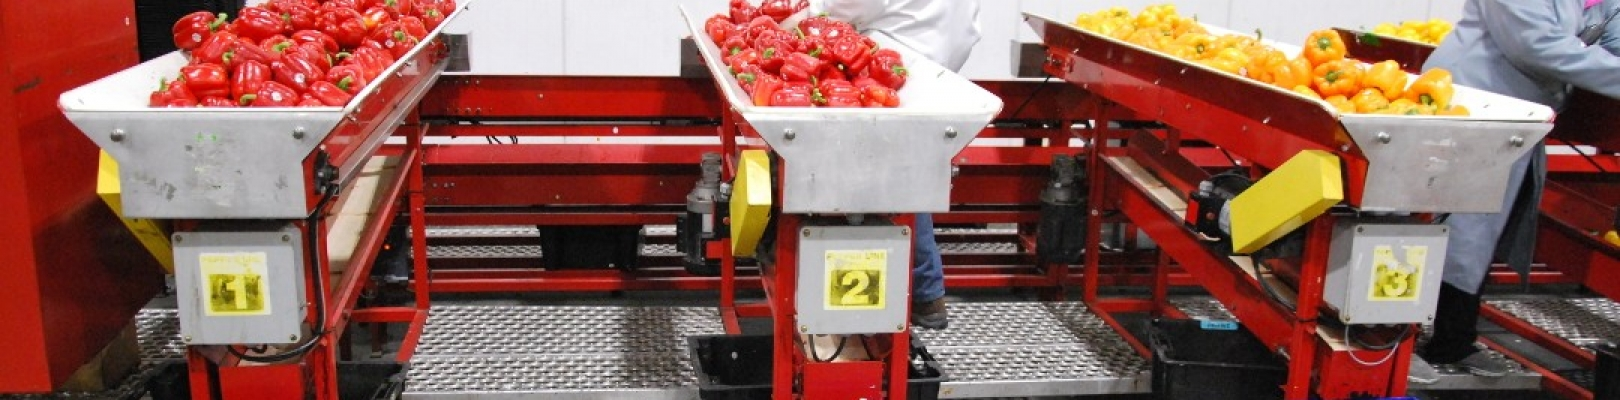 produce-packing-conveyor